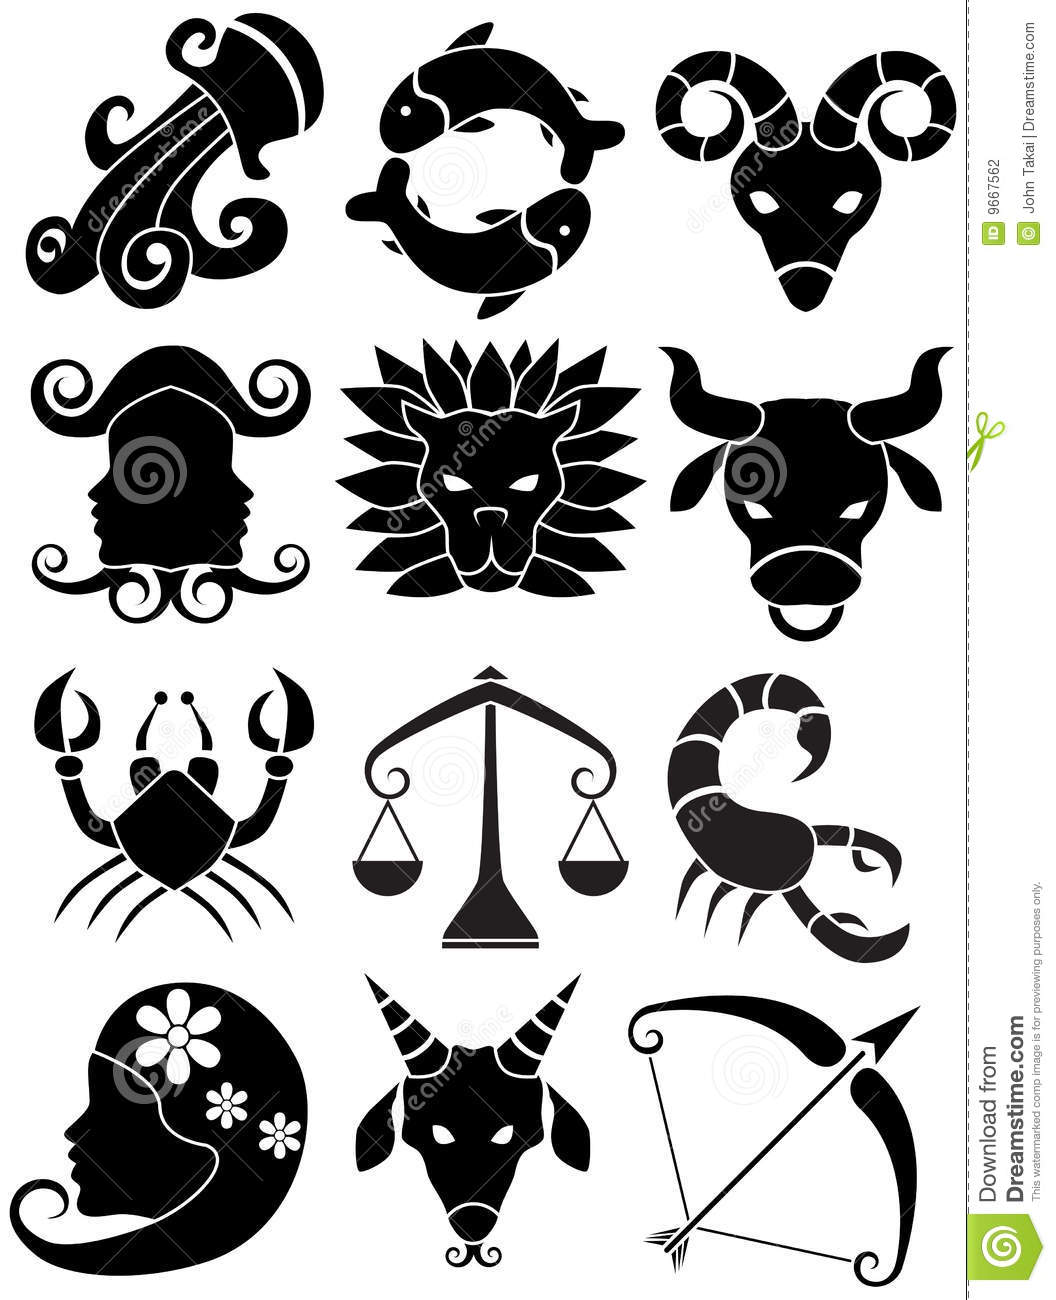 zodiac horoscope icons black and white stock vector illustration of guide gemini 9667562. Black Bedroom Furniture Sets. Home Design Ideas